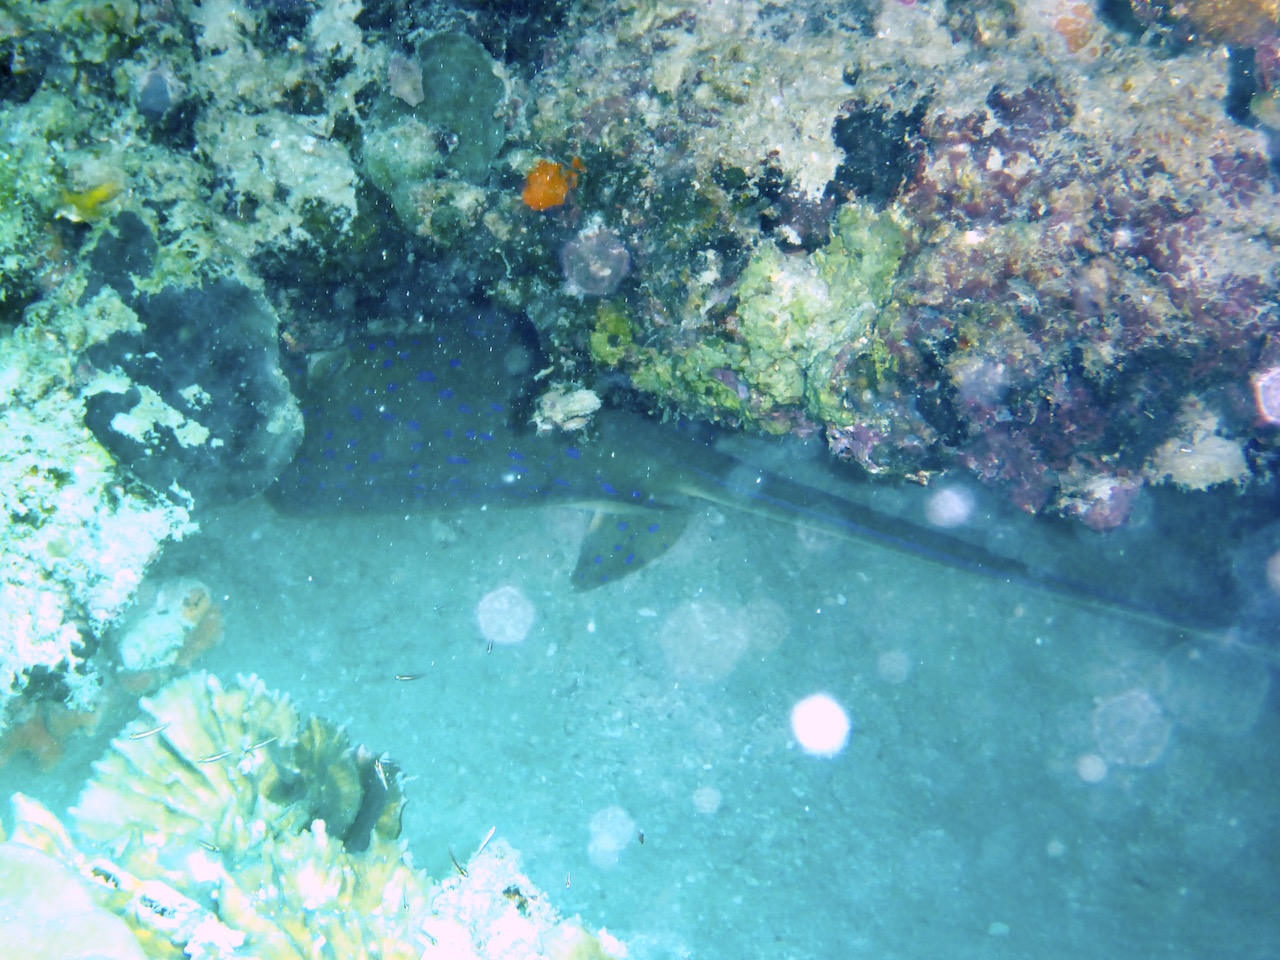 This blue spotted sting ray ran into us and then hid under the coral. You can just see its tail. Photo: Vlademer Laloy